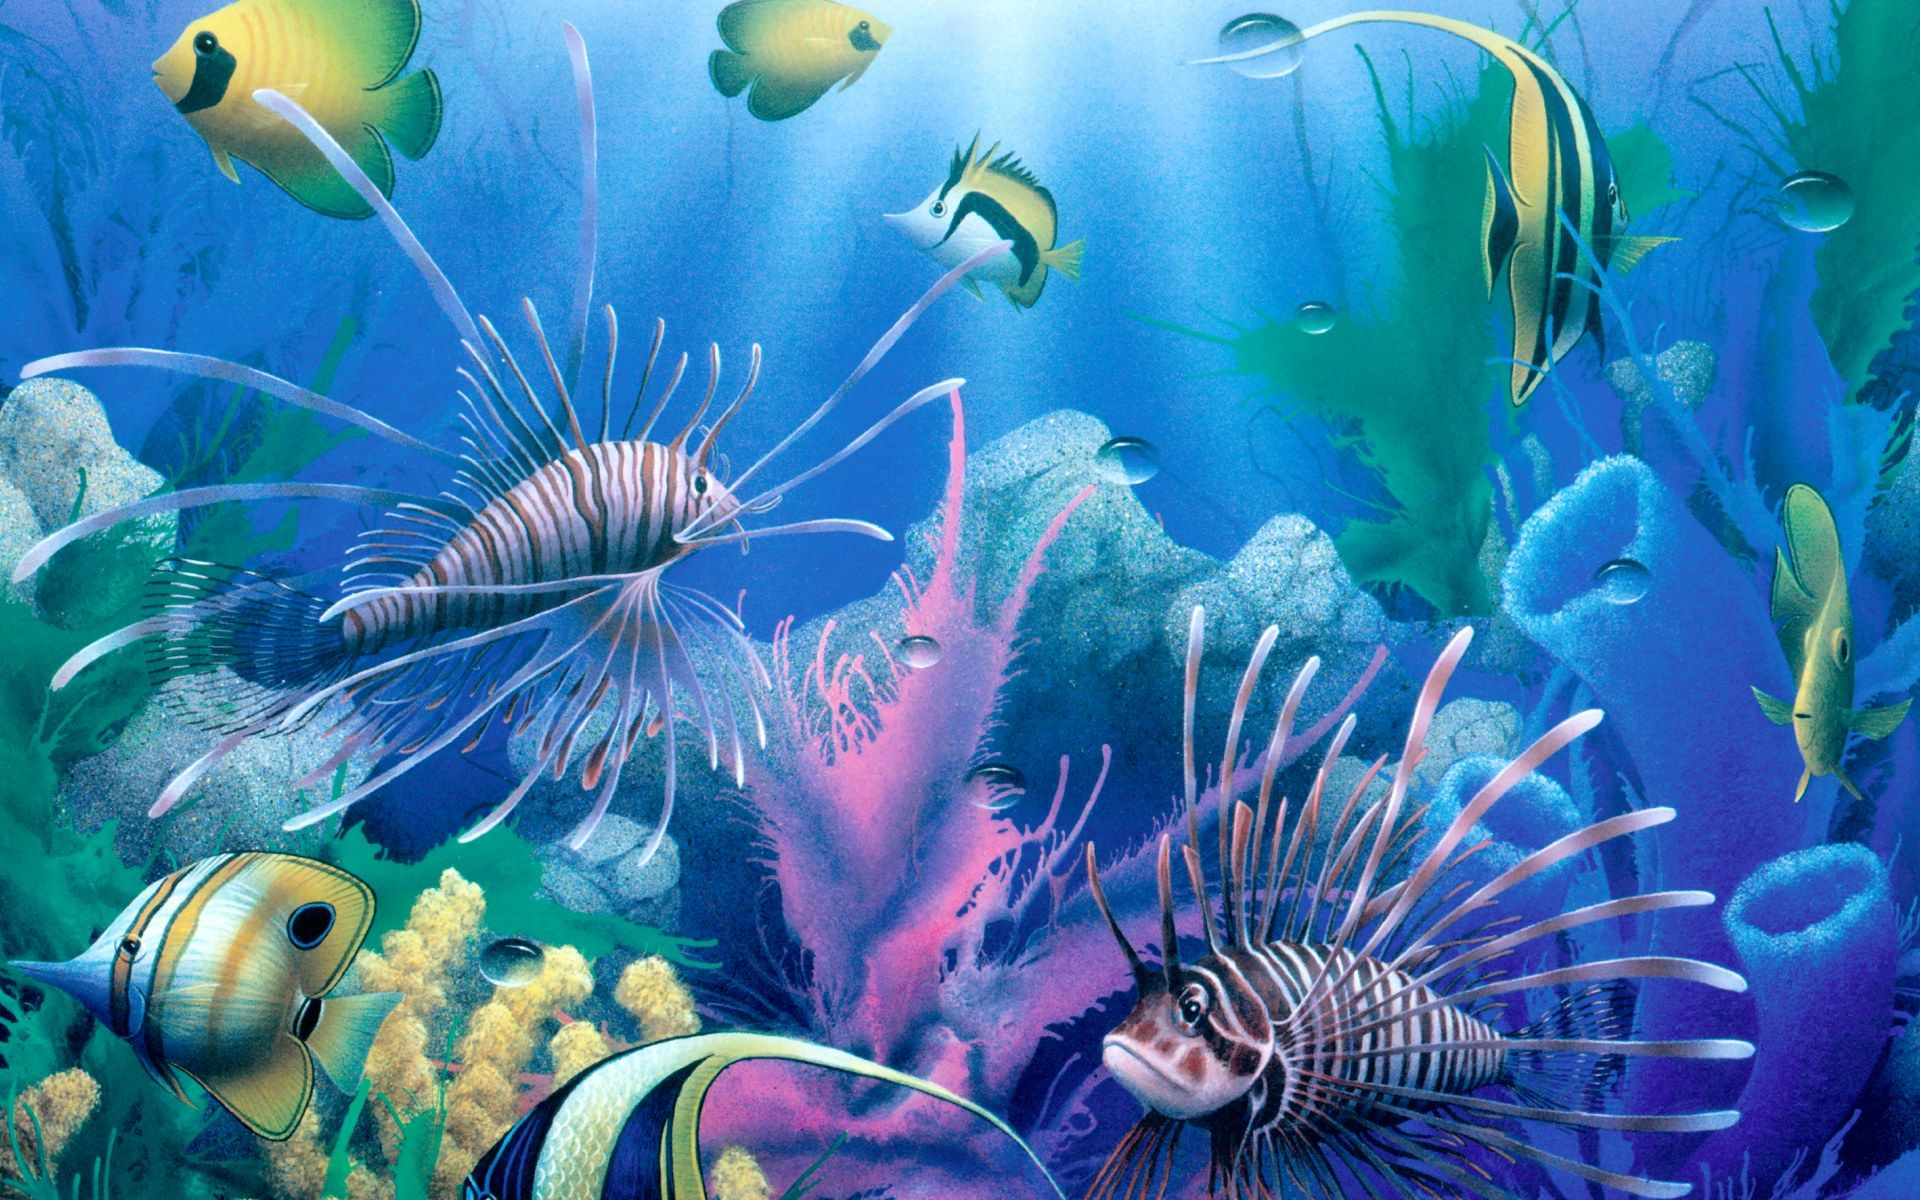 3d animated fish wallpaper images